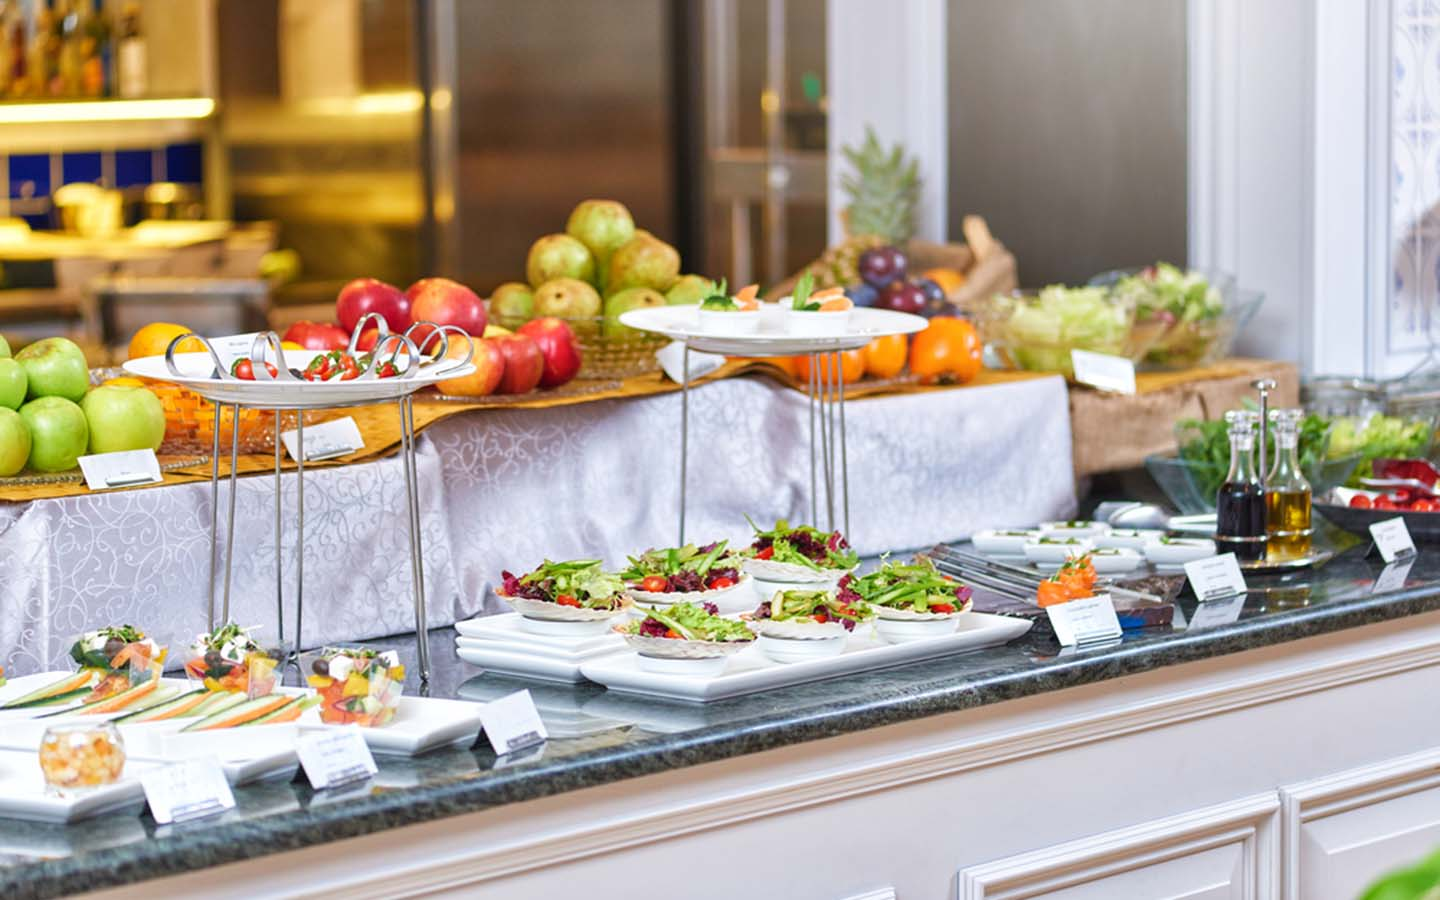 Breakfast buffet at one of the hotels near Abu Dhabi airport